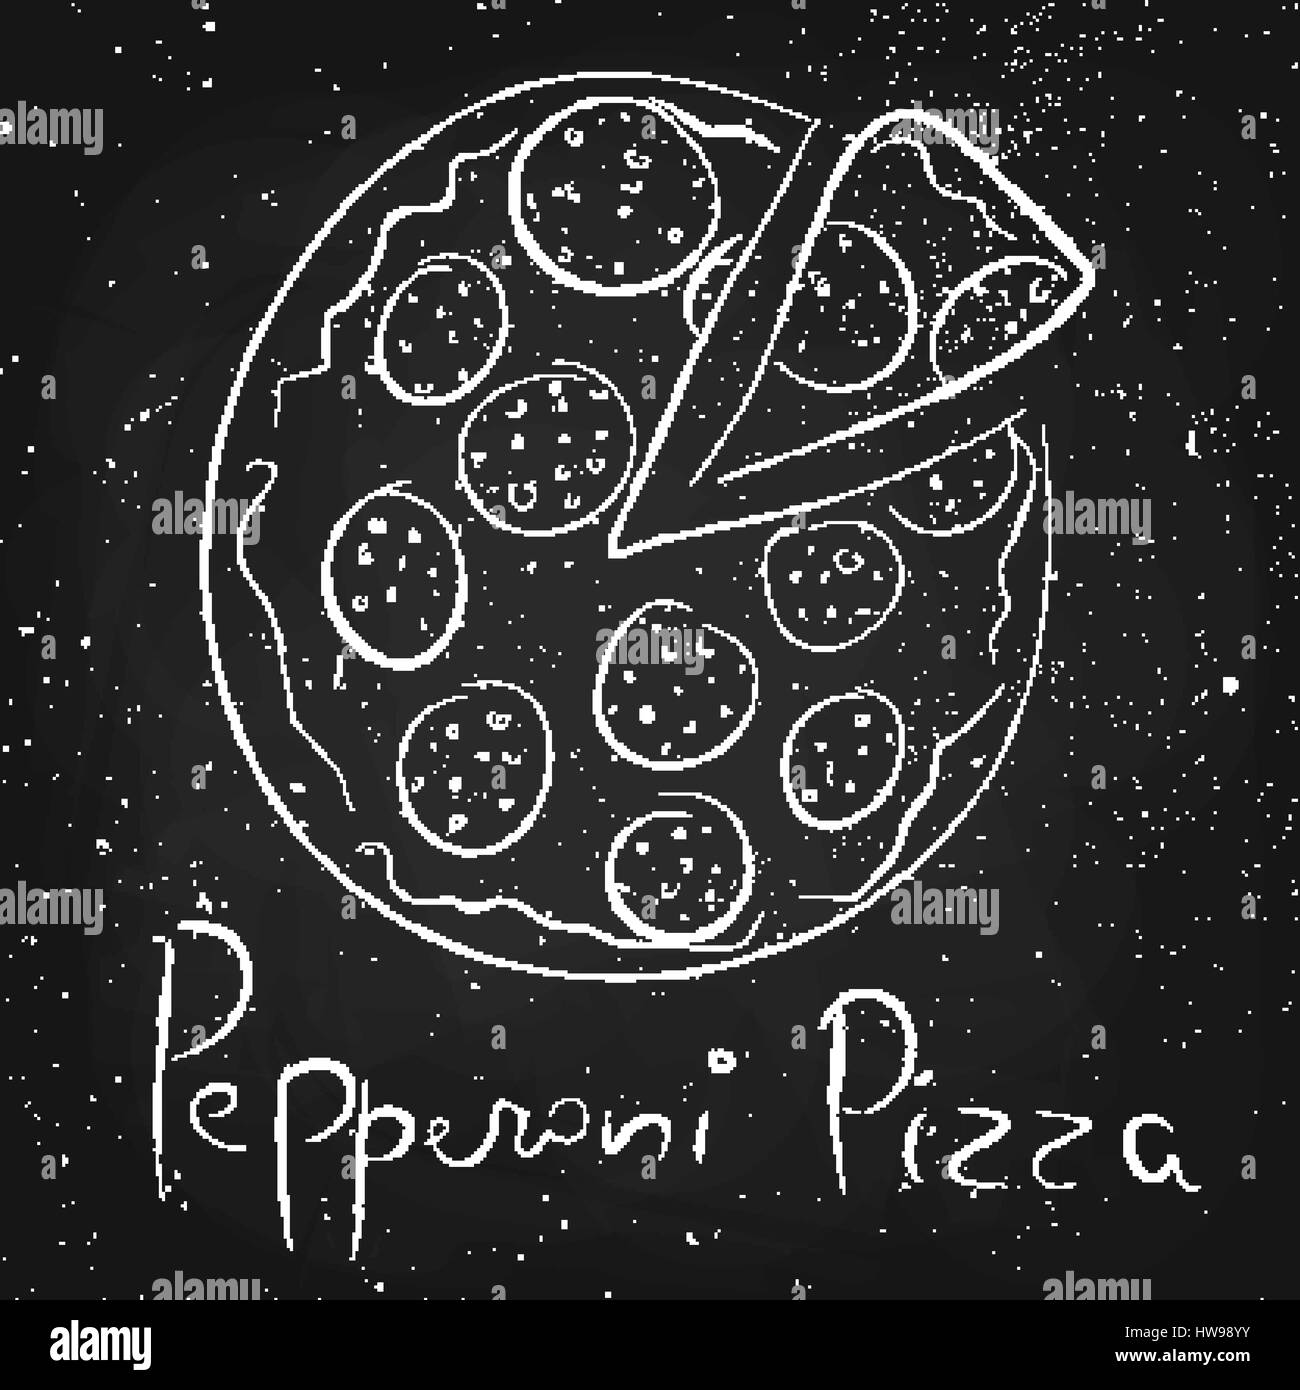 Pepperoni pizza, drawn in chalk on a blackboard - Stock Vector